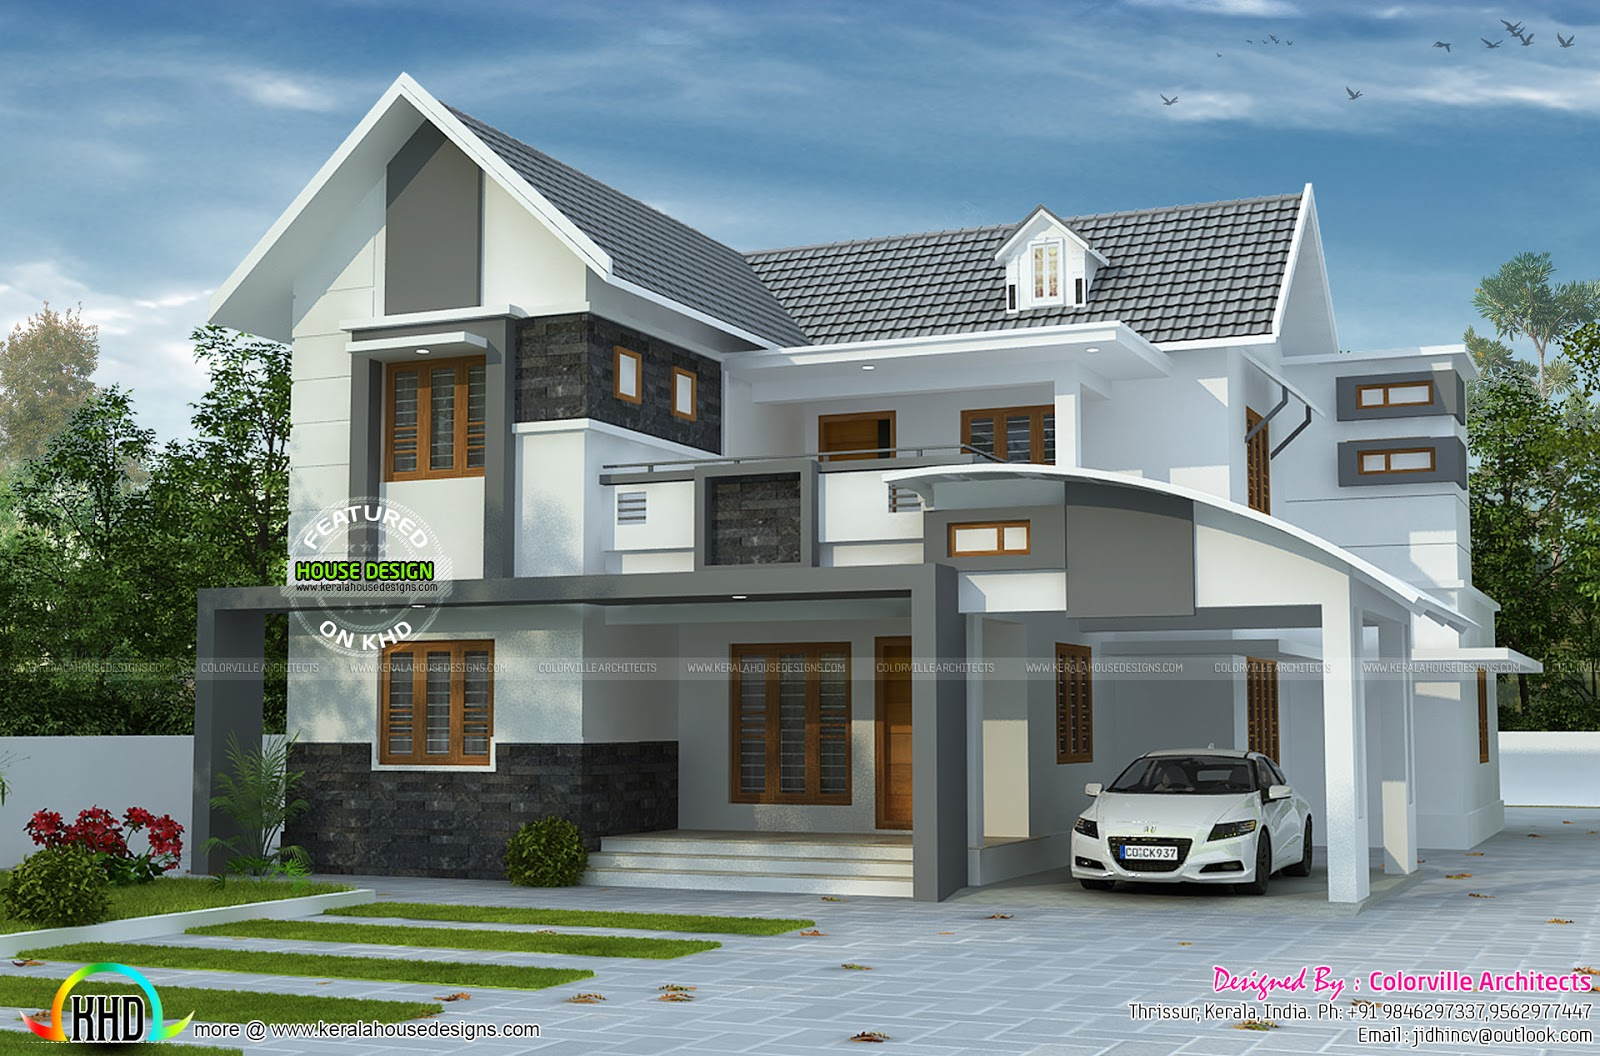 House plan by colorville architects kerala home design for Houses and plans